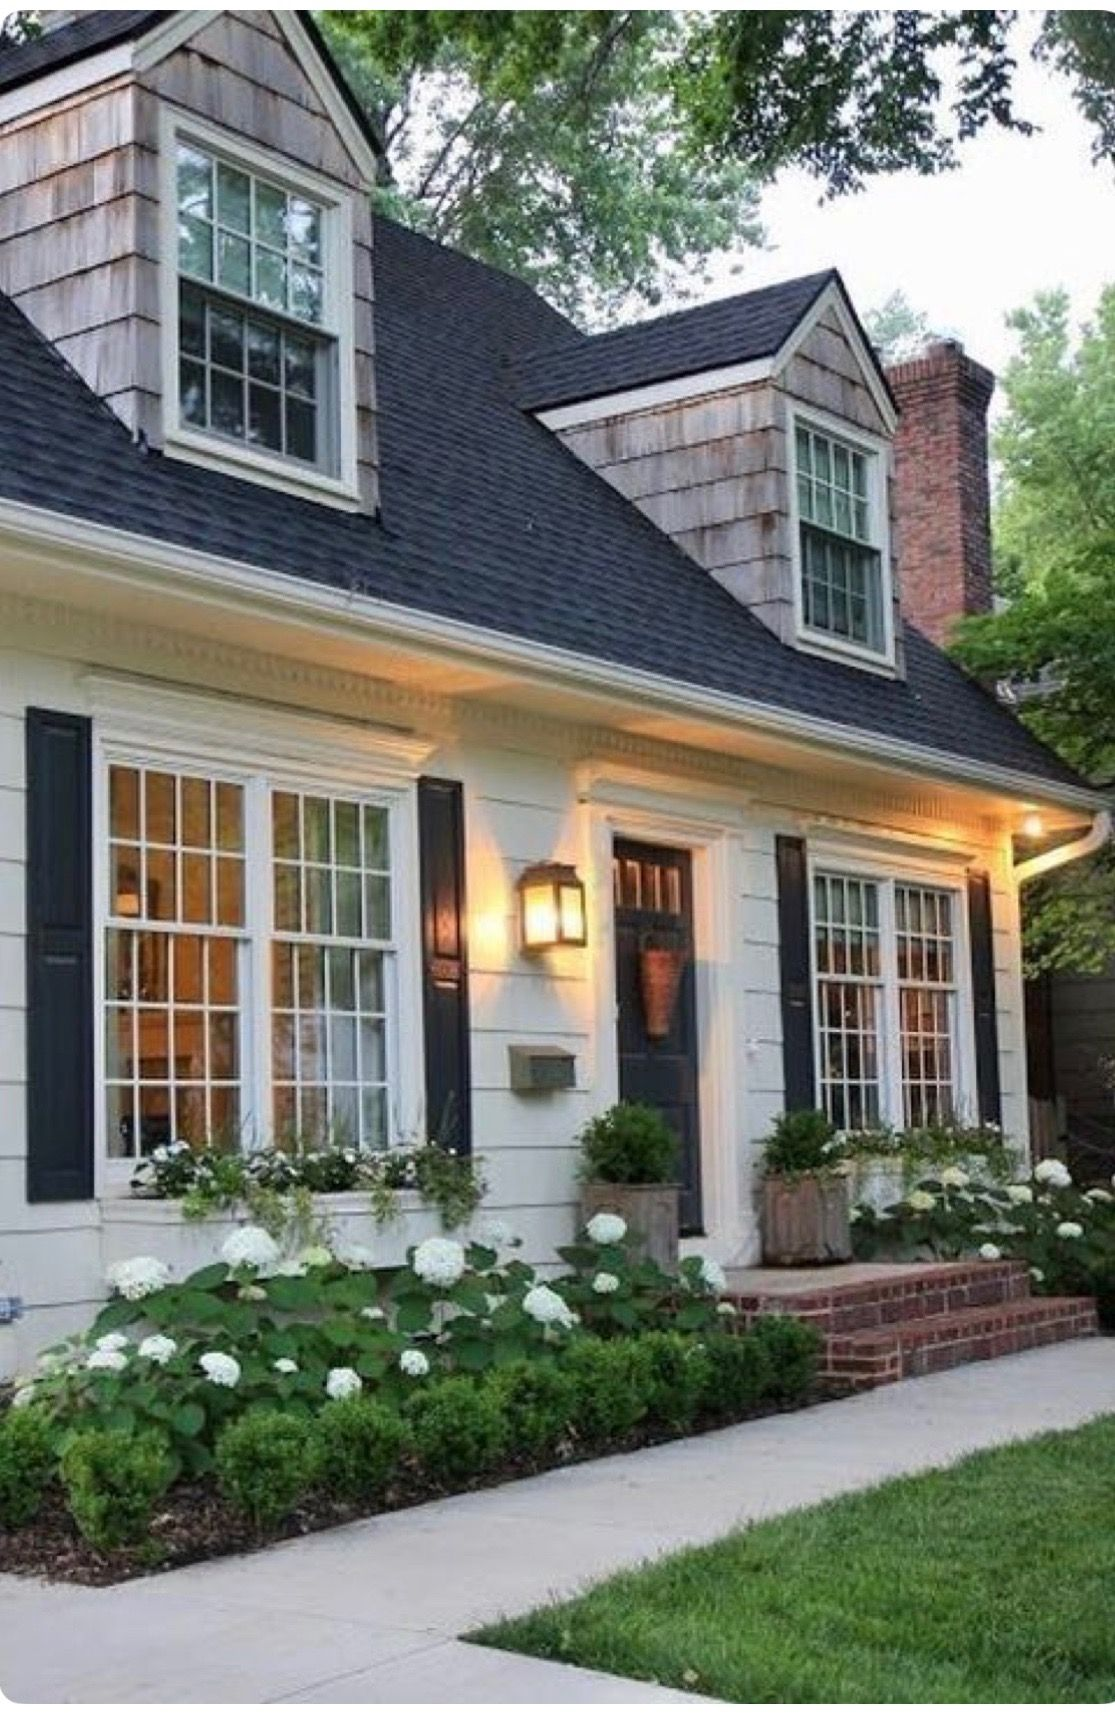 Pin by MaryO on Interior Design(33 categories) | Cottage house exterior, House  designs exterior, Cape cod house exterior